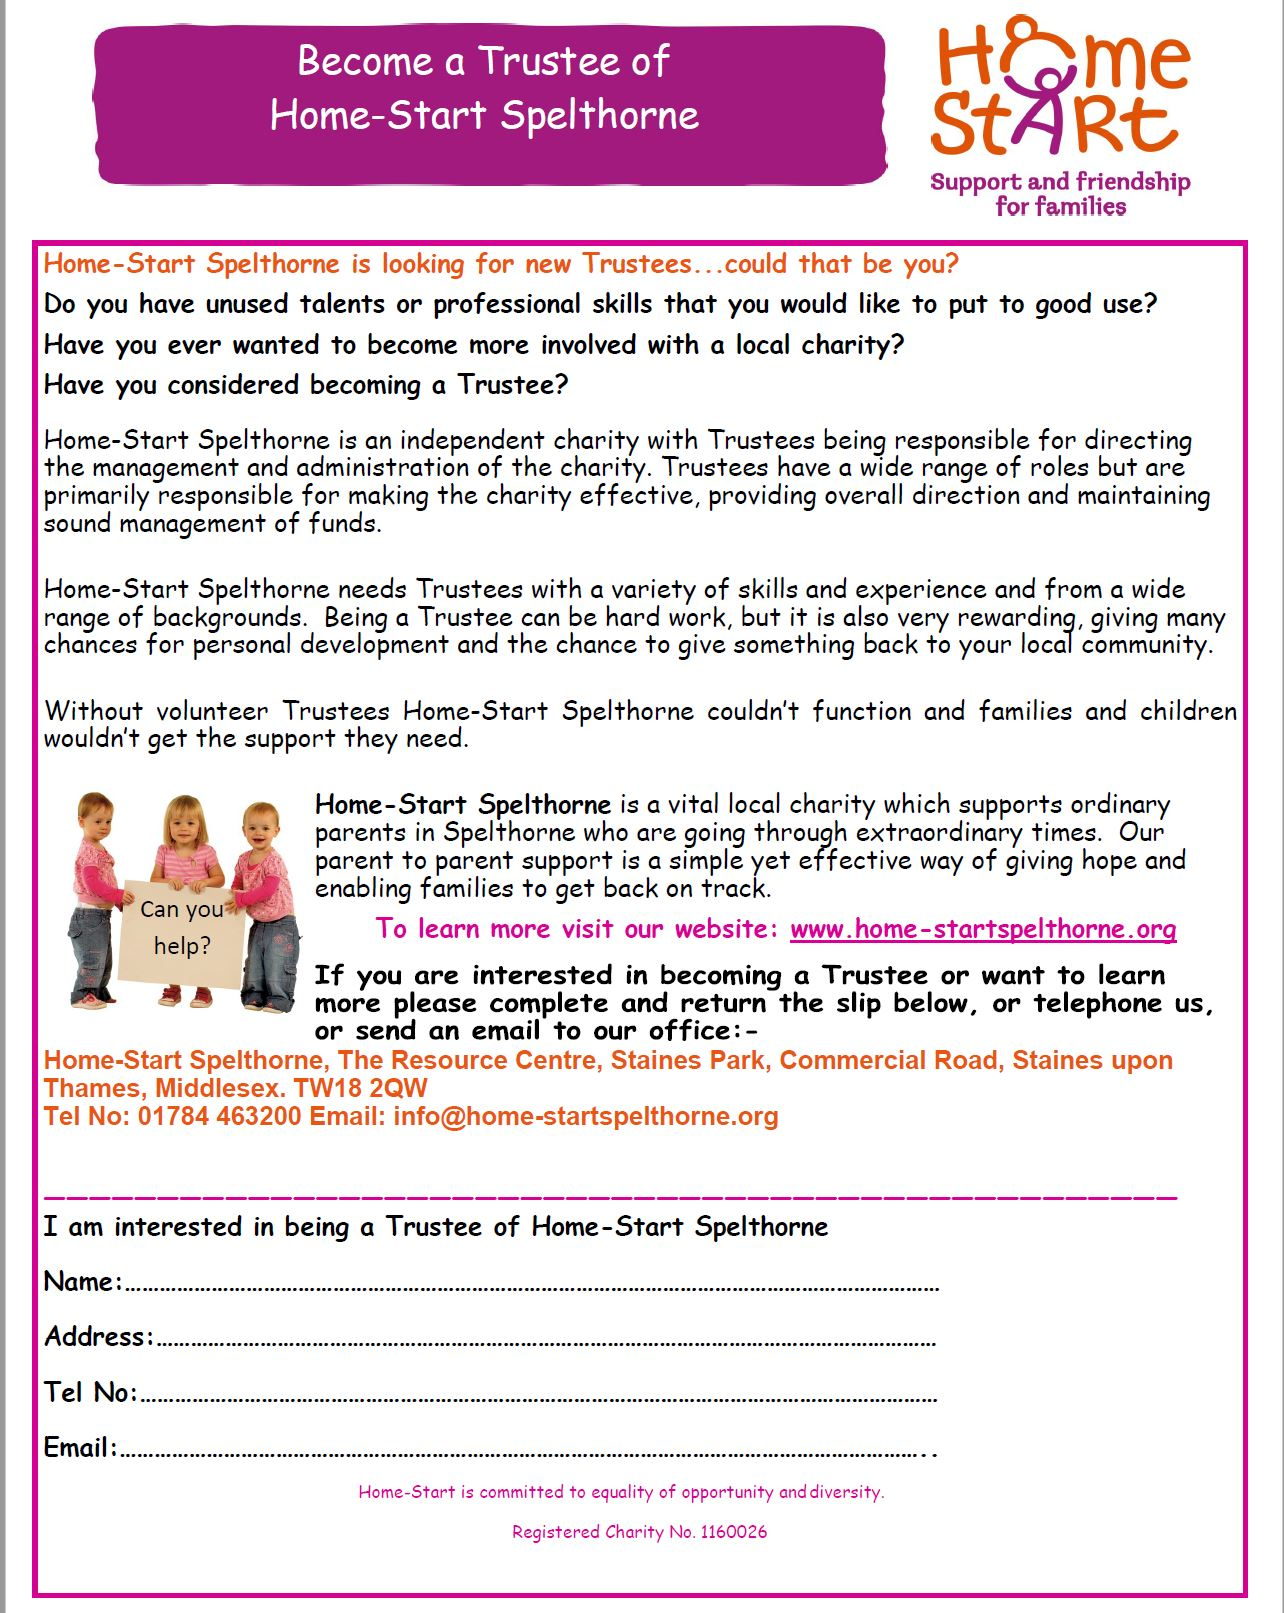 Become a Home-Start Spelthorne Trustee